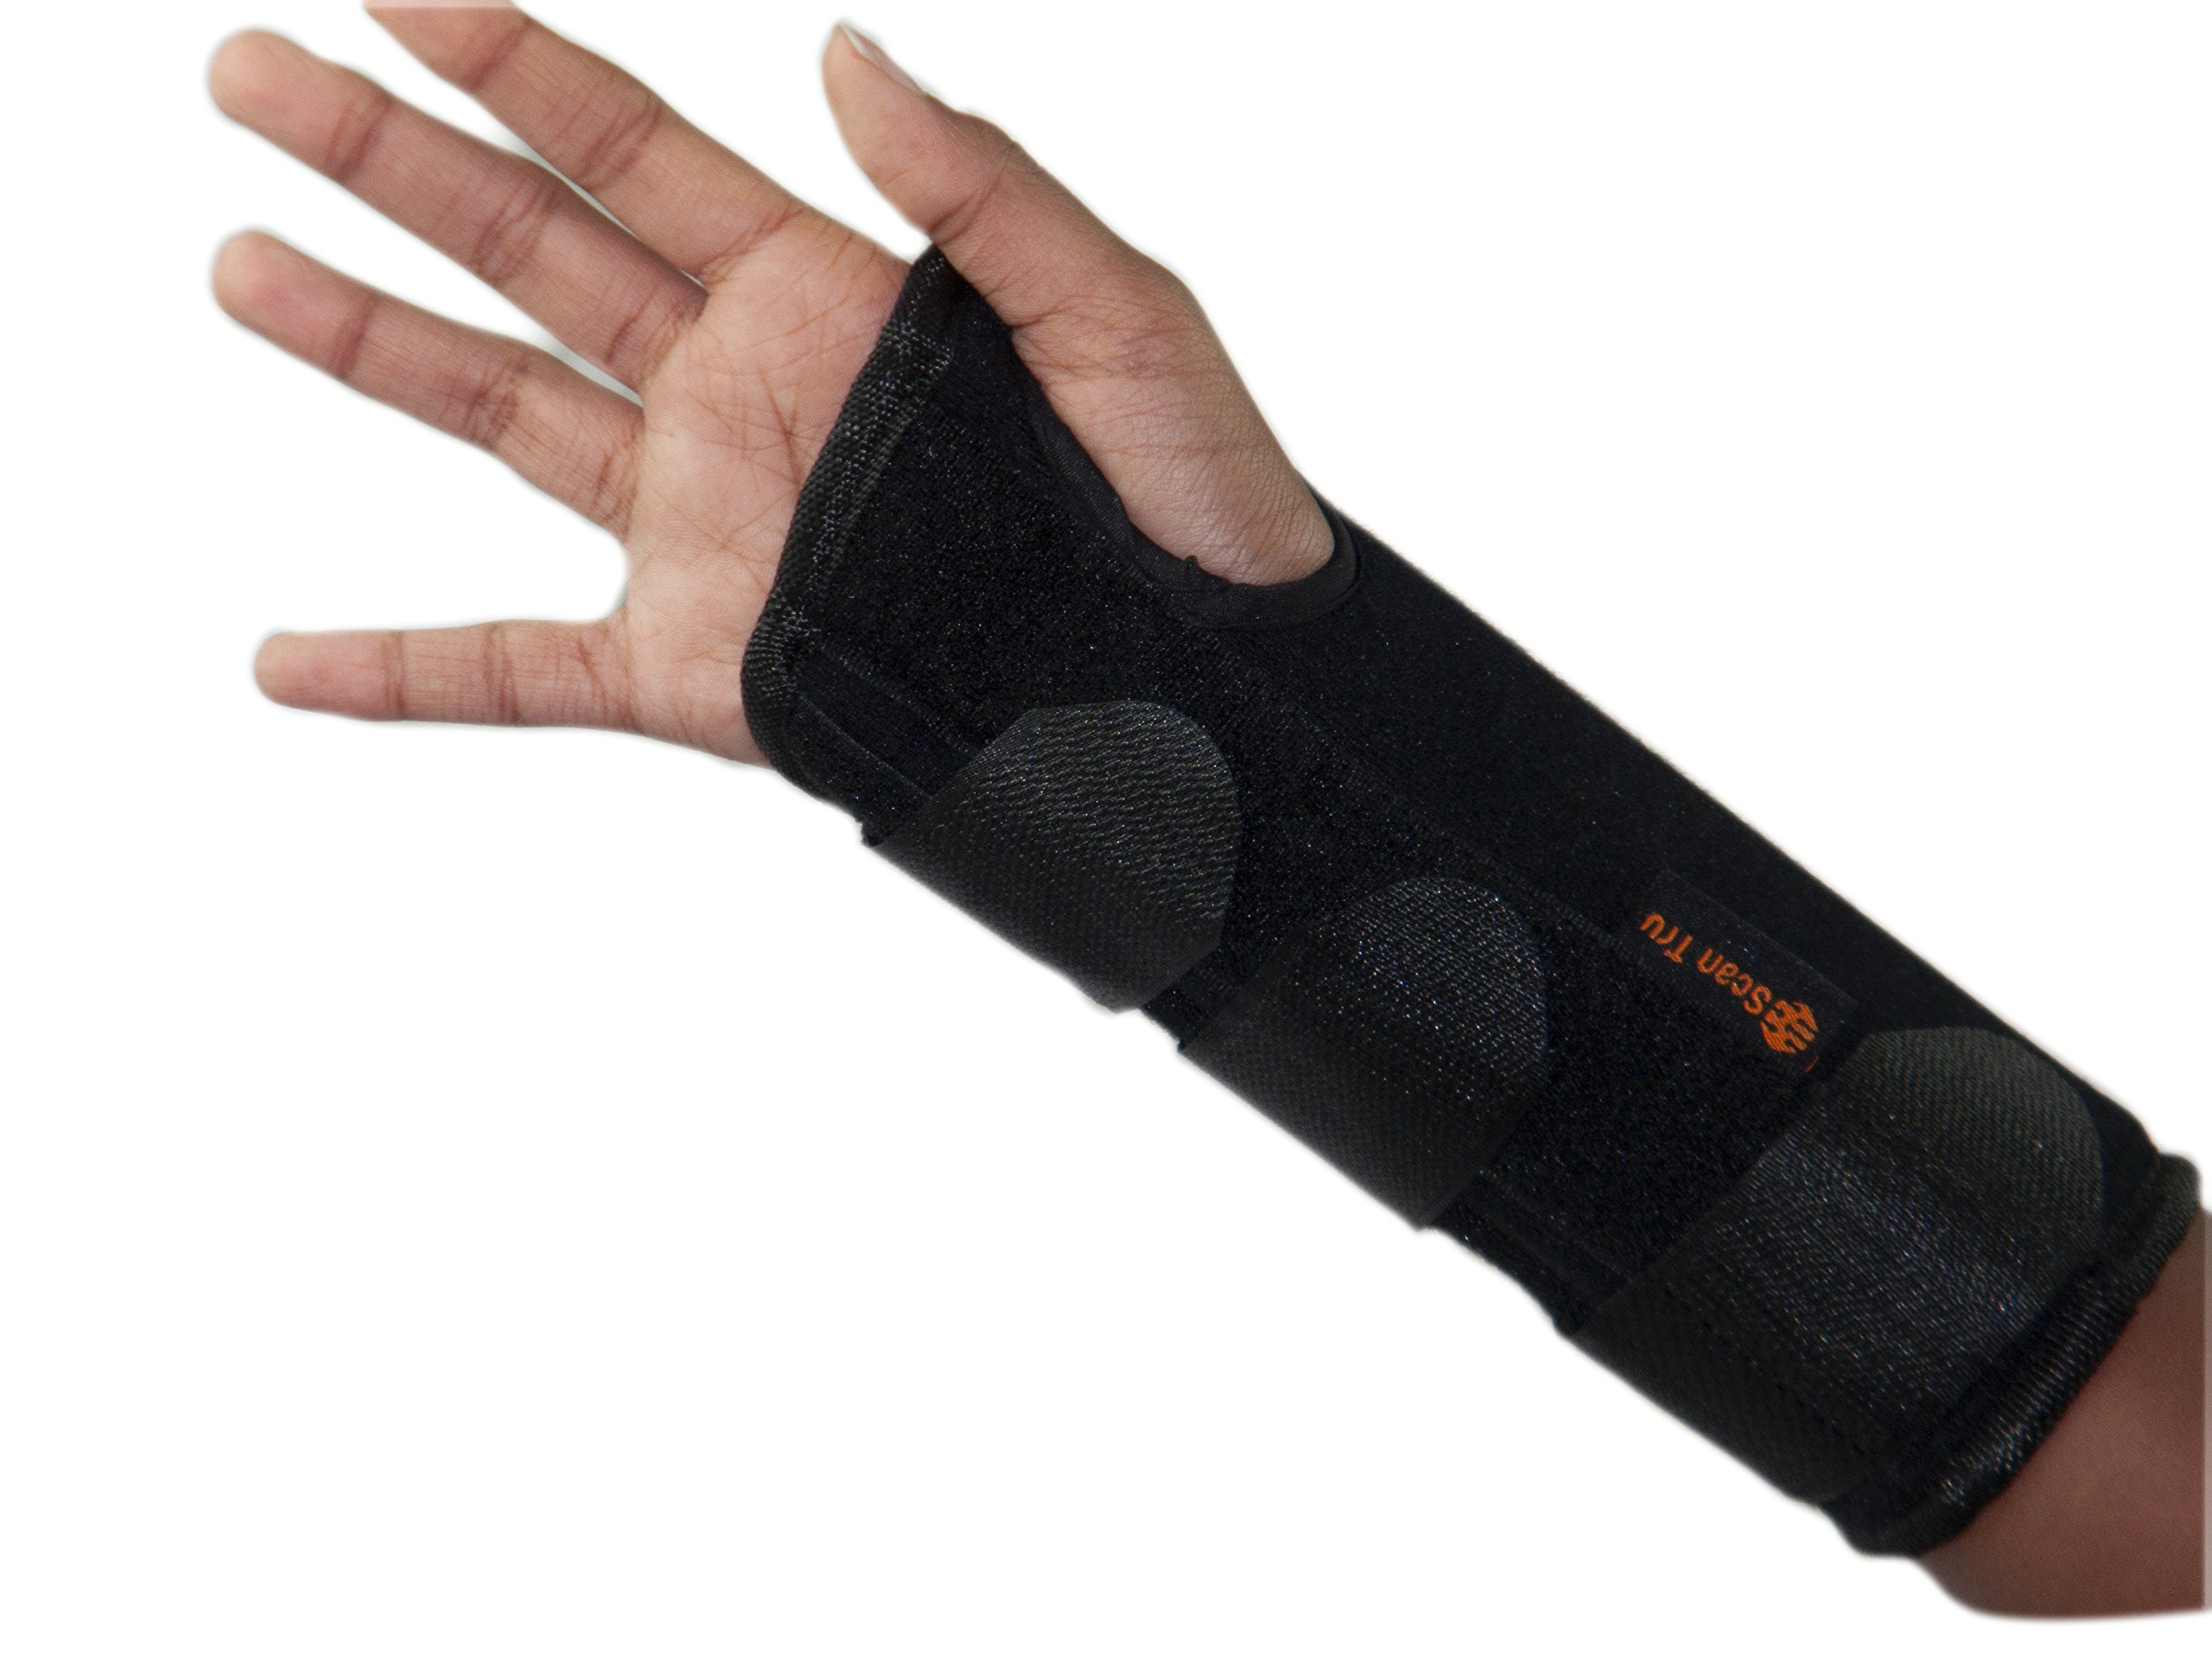 Scan Tru Carpal Tunnel Adjustable Wrist Brace Long, Short, Right Or Left for Women Men Day Or Nighttime – Breathable, with Metal Splints, Flexible Washable S – L (Long Small R)